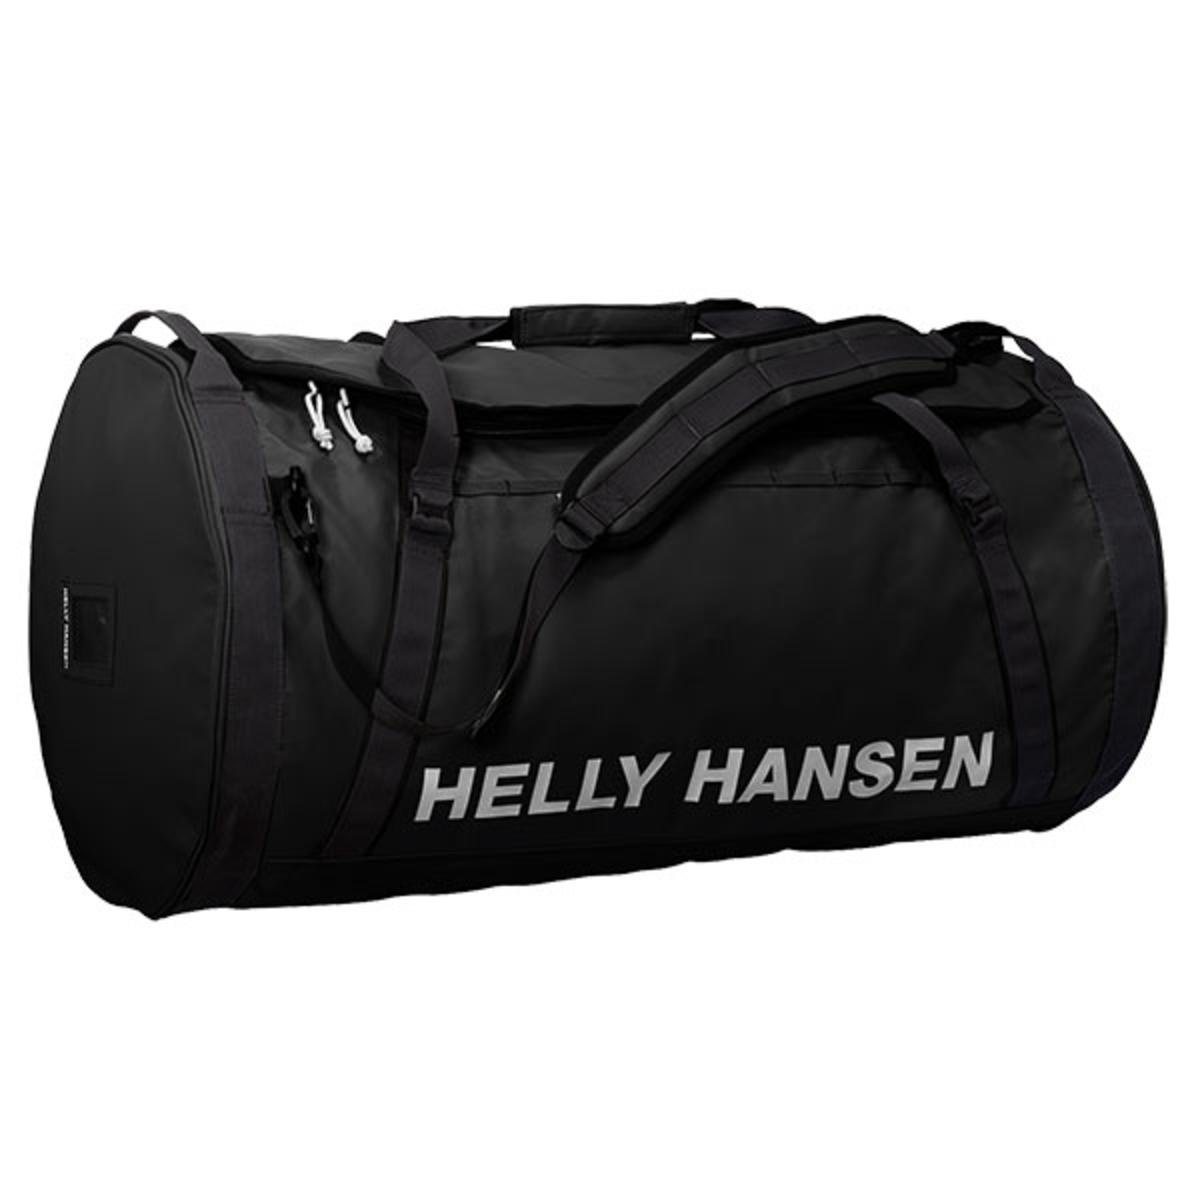 9f294f60ea2 Helly Hansen Duffel Bag 2 70L - The Warming Store